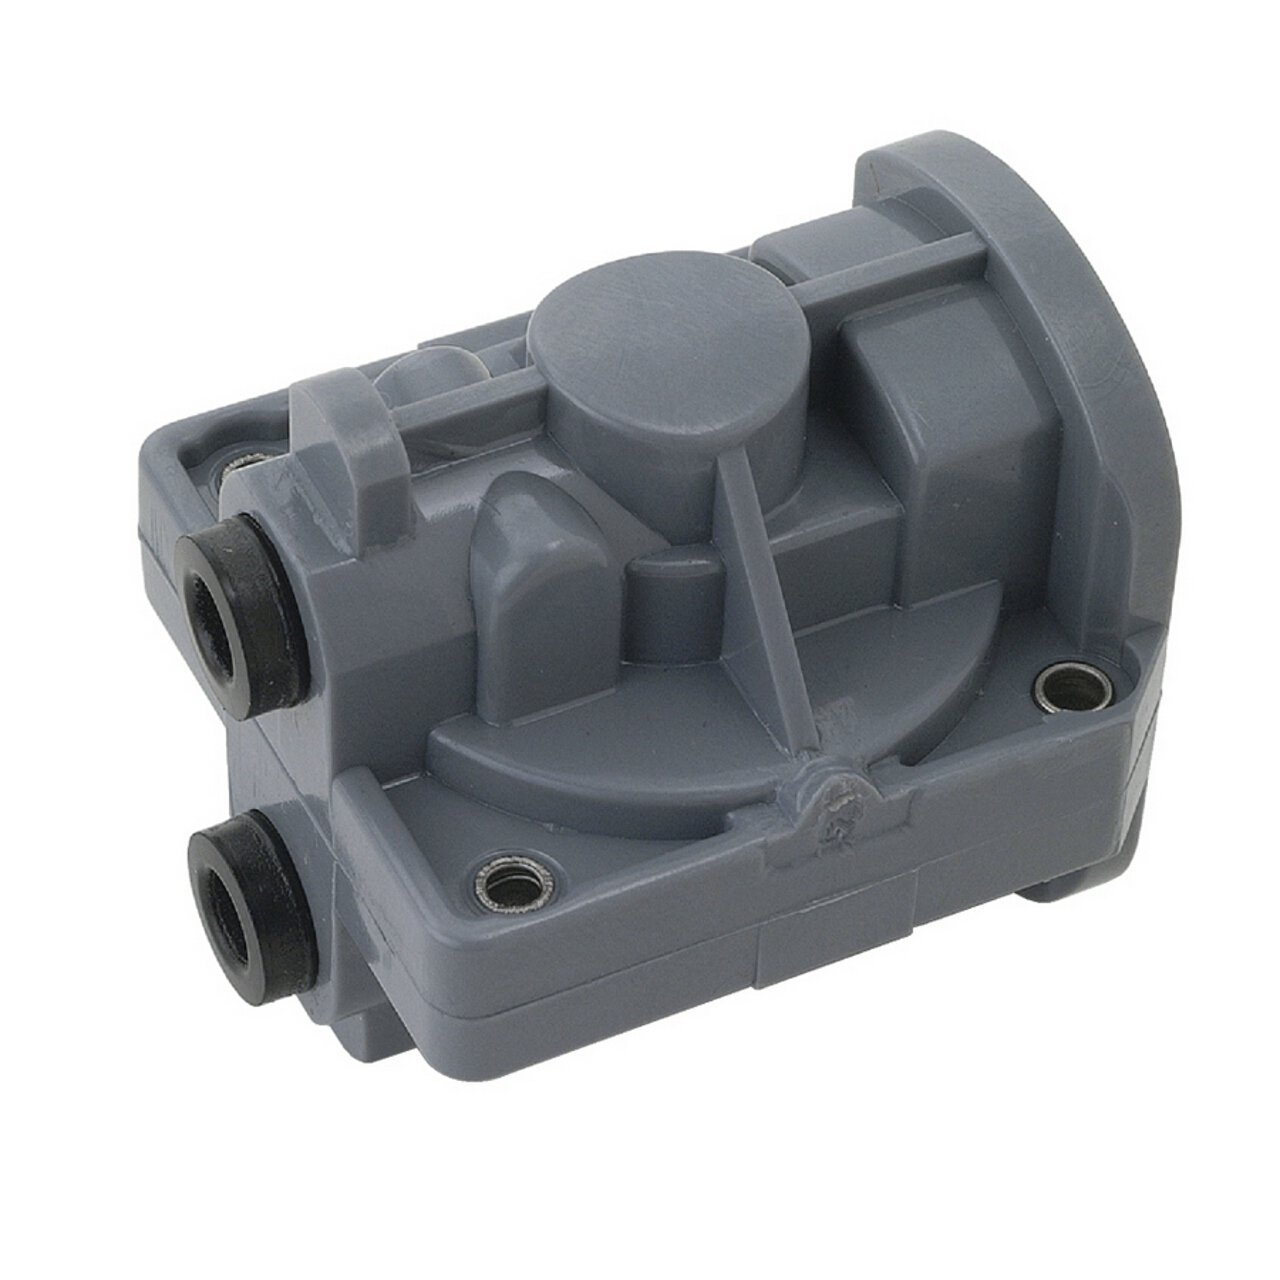 Pfister 974291 Replacement Part Price Pfister 9742910